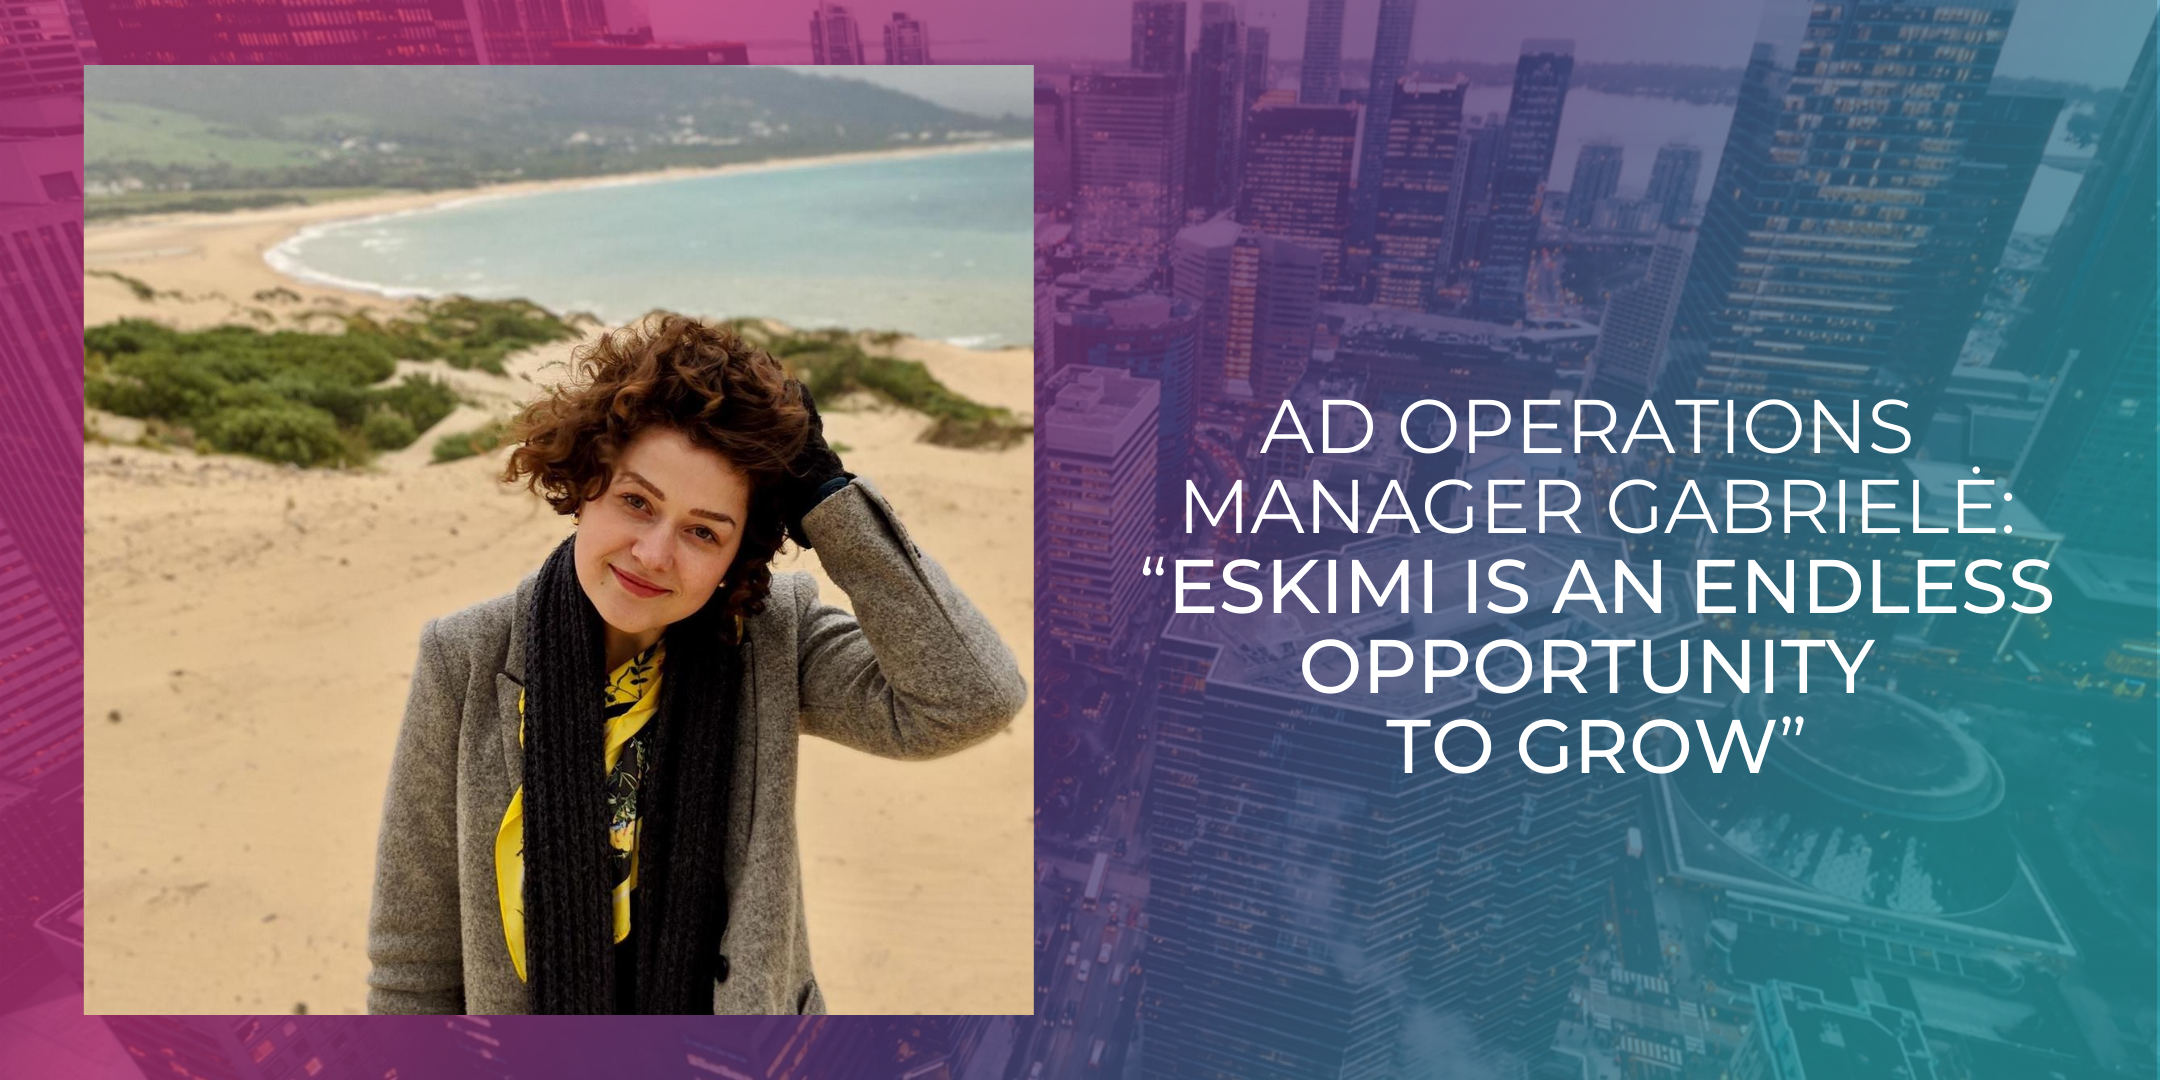 """Ad Operations Manager Gabrielė: """"Eskimi Is An Endless Opportunity To Grow"""""""